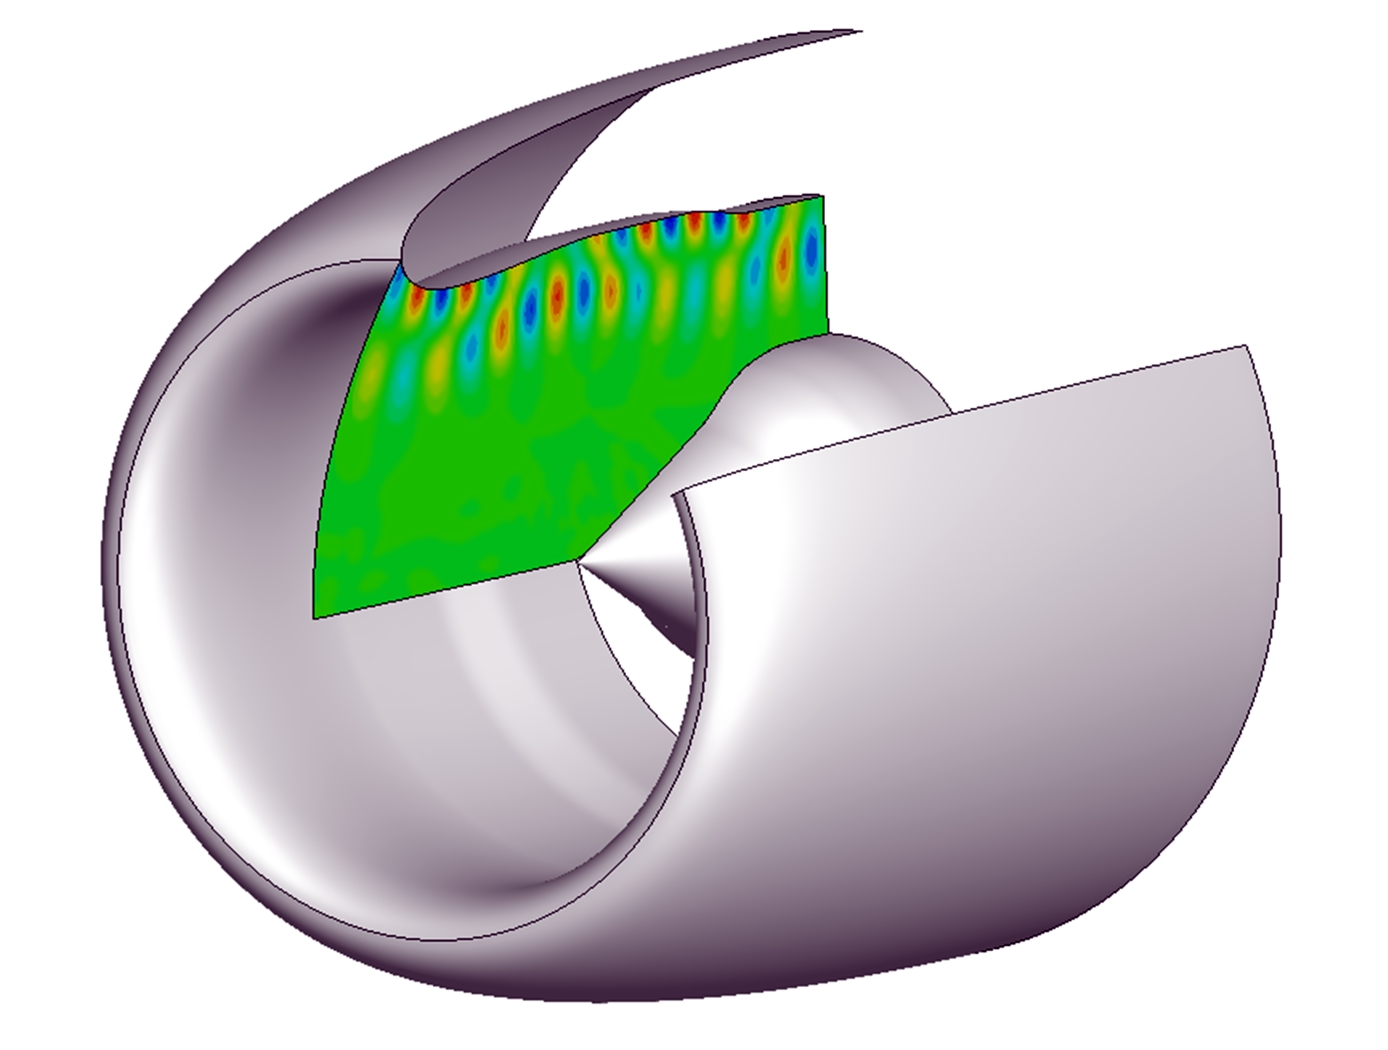 Example inlet duct propagation prediction (related to first invention)